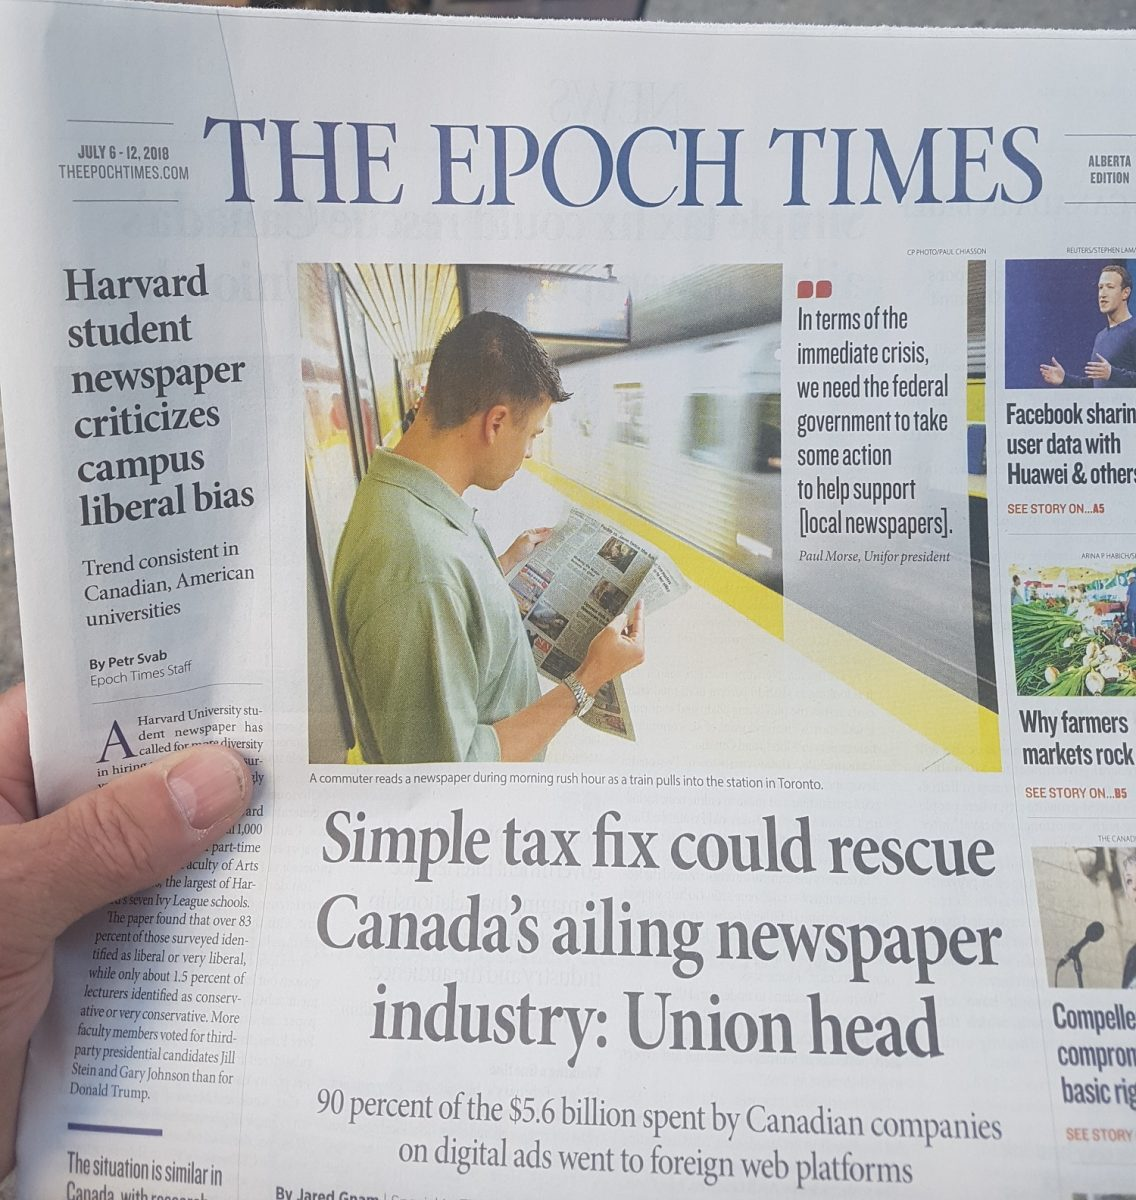 Simple Tax Fix Could Help Rescue Canada's Ailing Newspaper Industry, Says Union Head